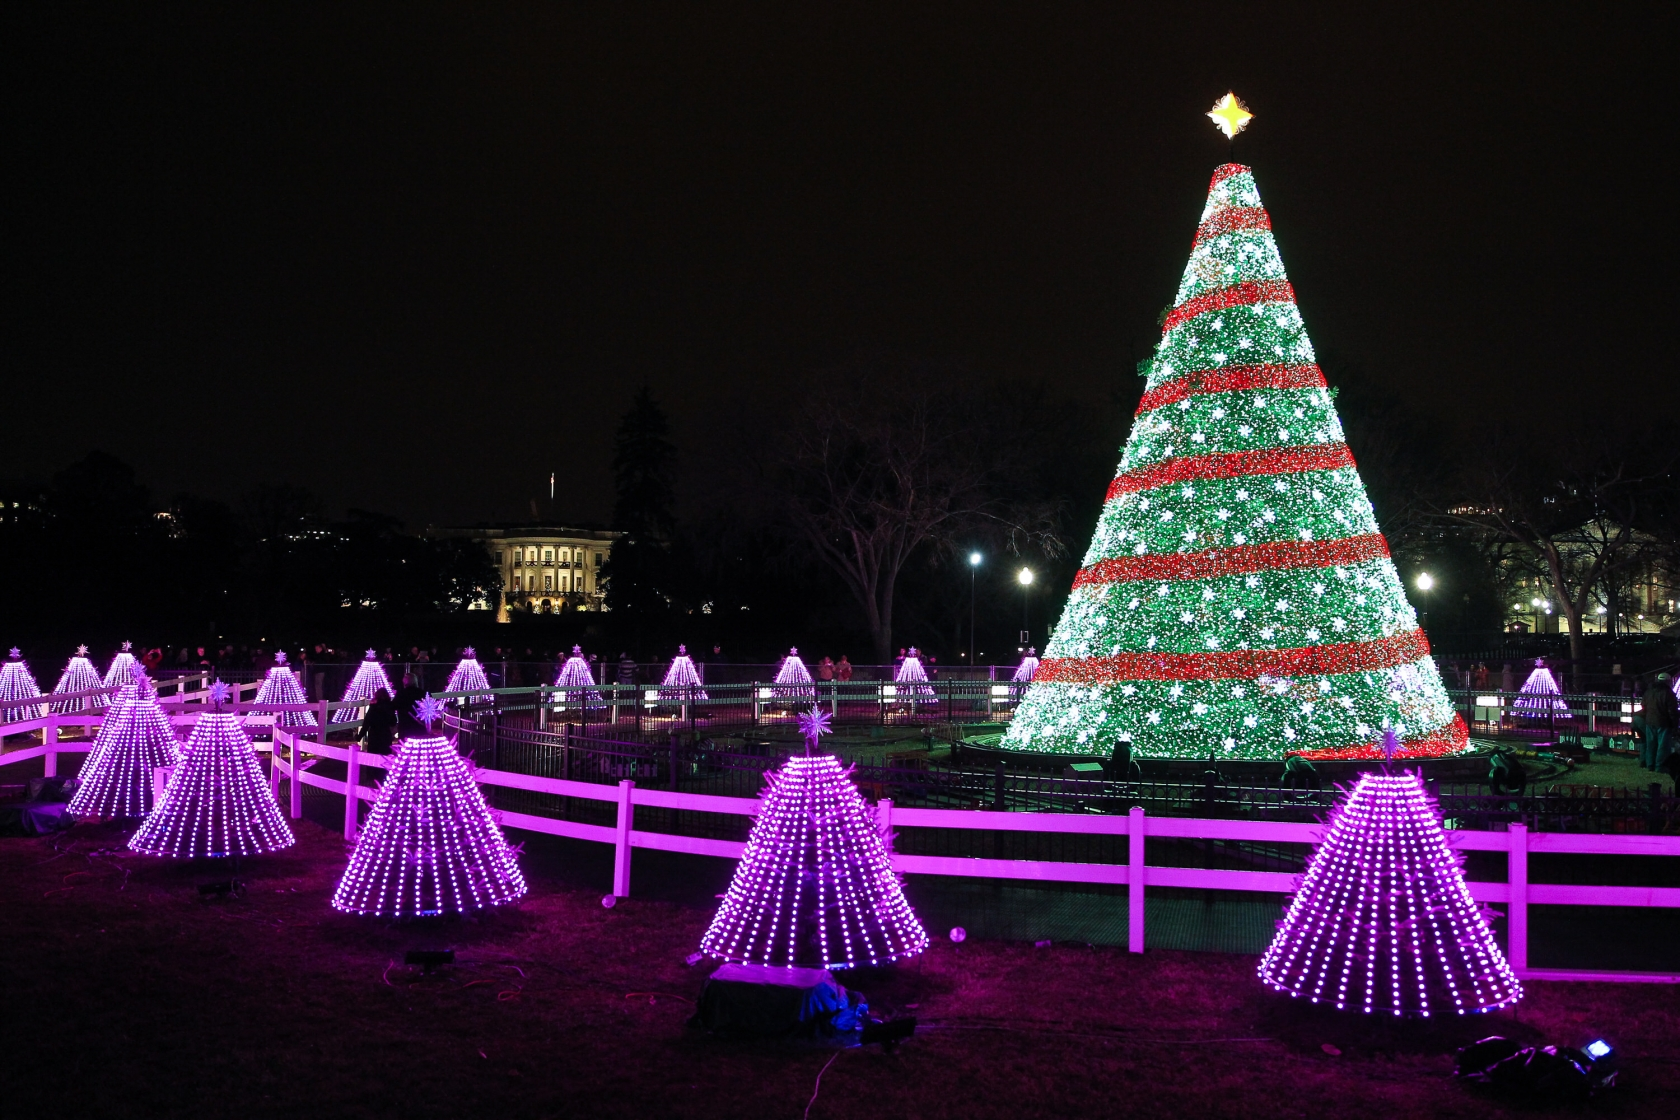 Famous Trees In National Parks Find Your Park - Visiting The National Christmas Tree